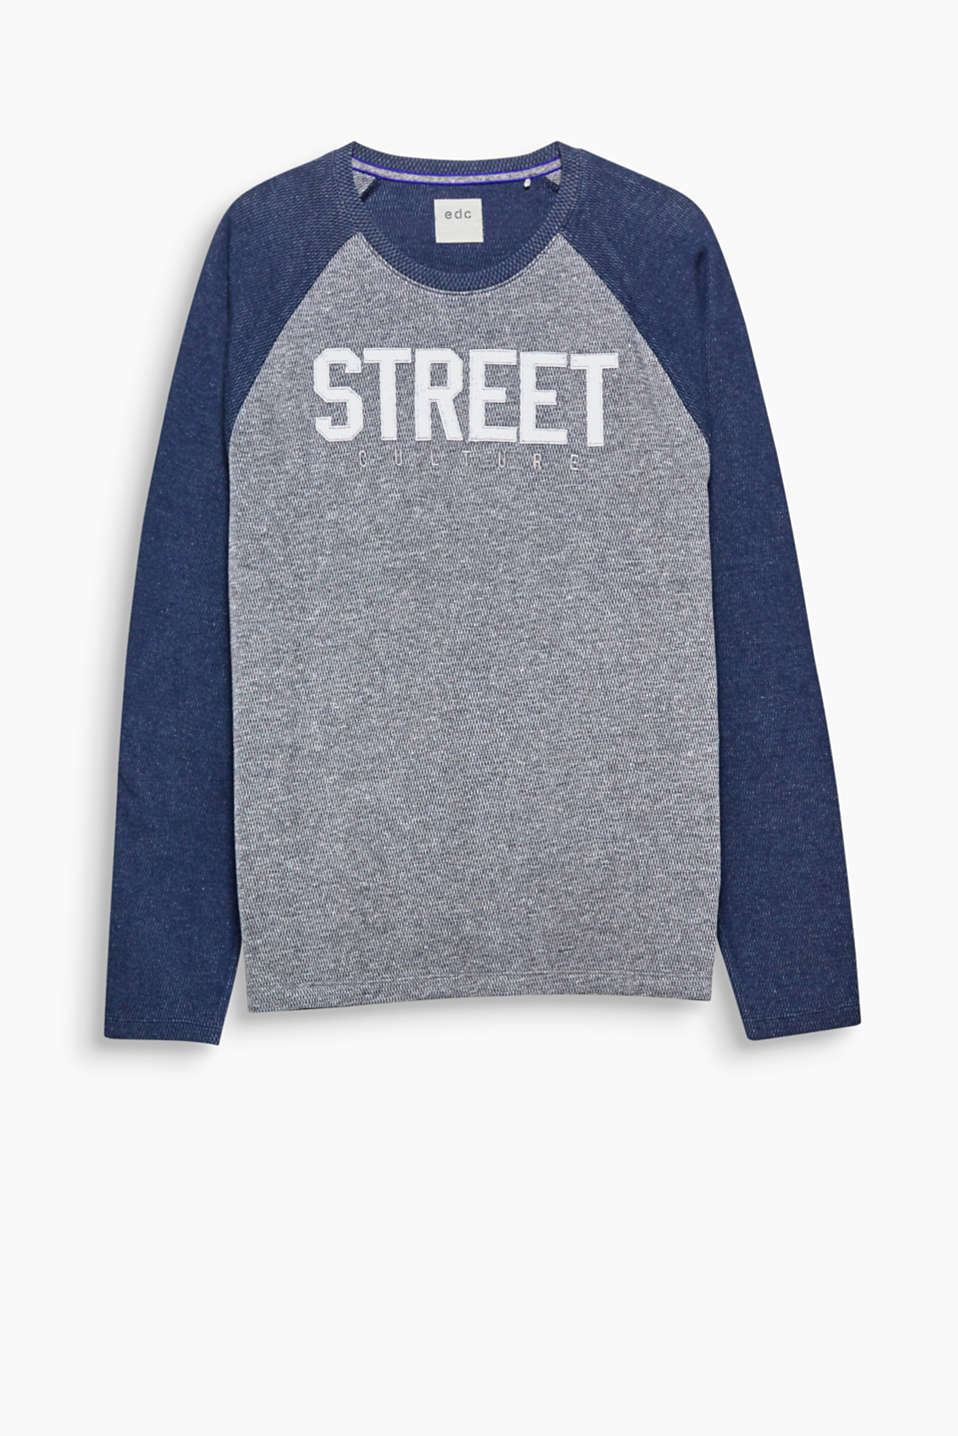 We love 3D texture! Long sleeve top with printed lettering and raglan sleeves